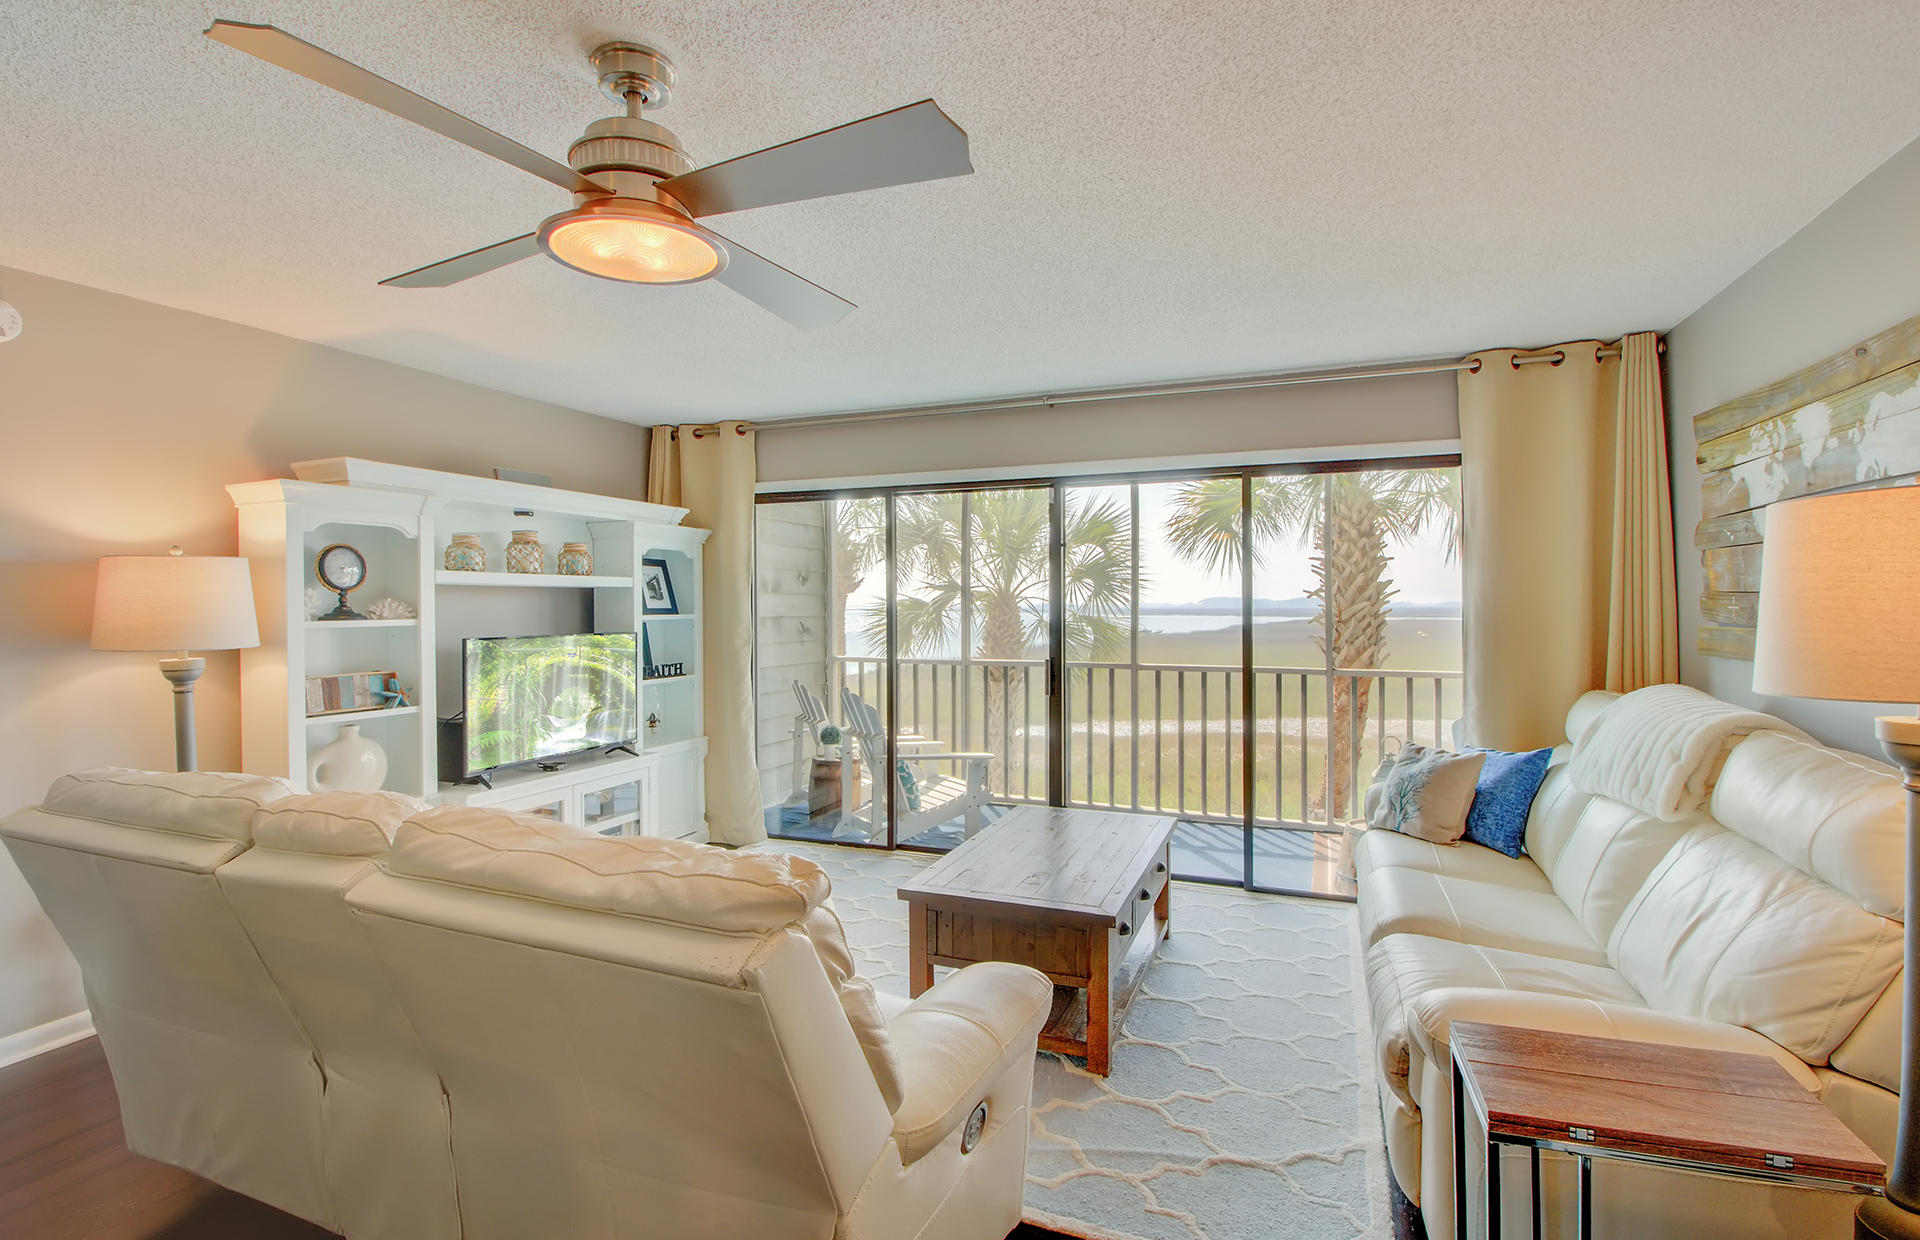 Mariners Cay Homes For Sale - 90 Mariners Cay, Folly Beach, SC - 15